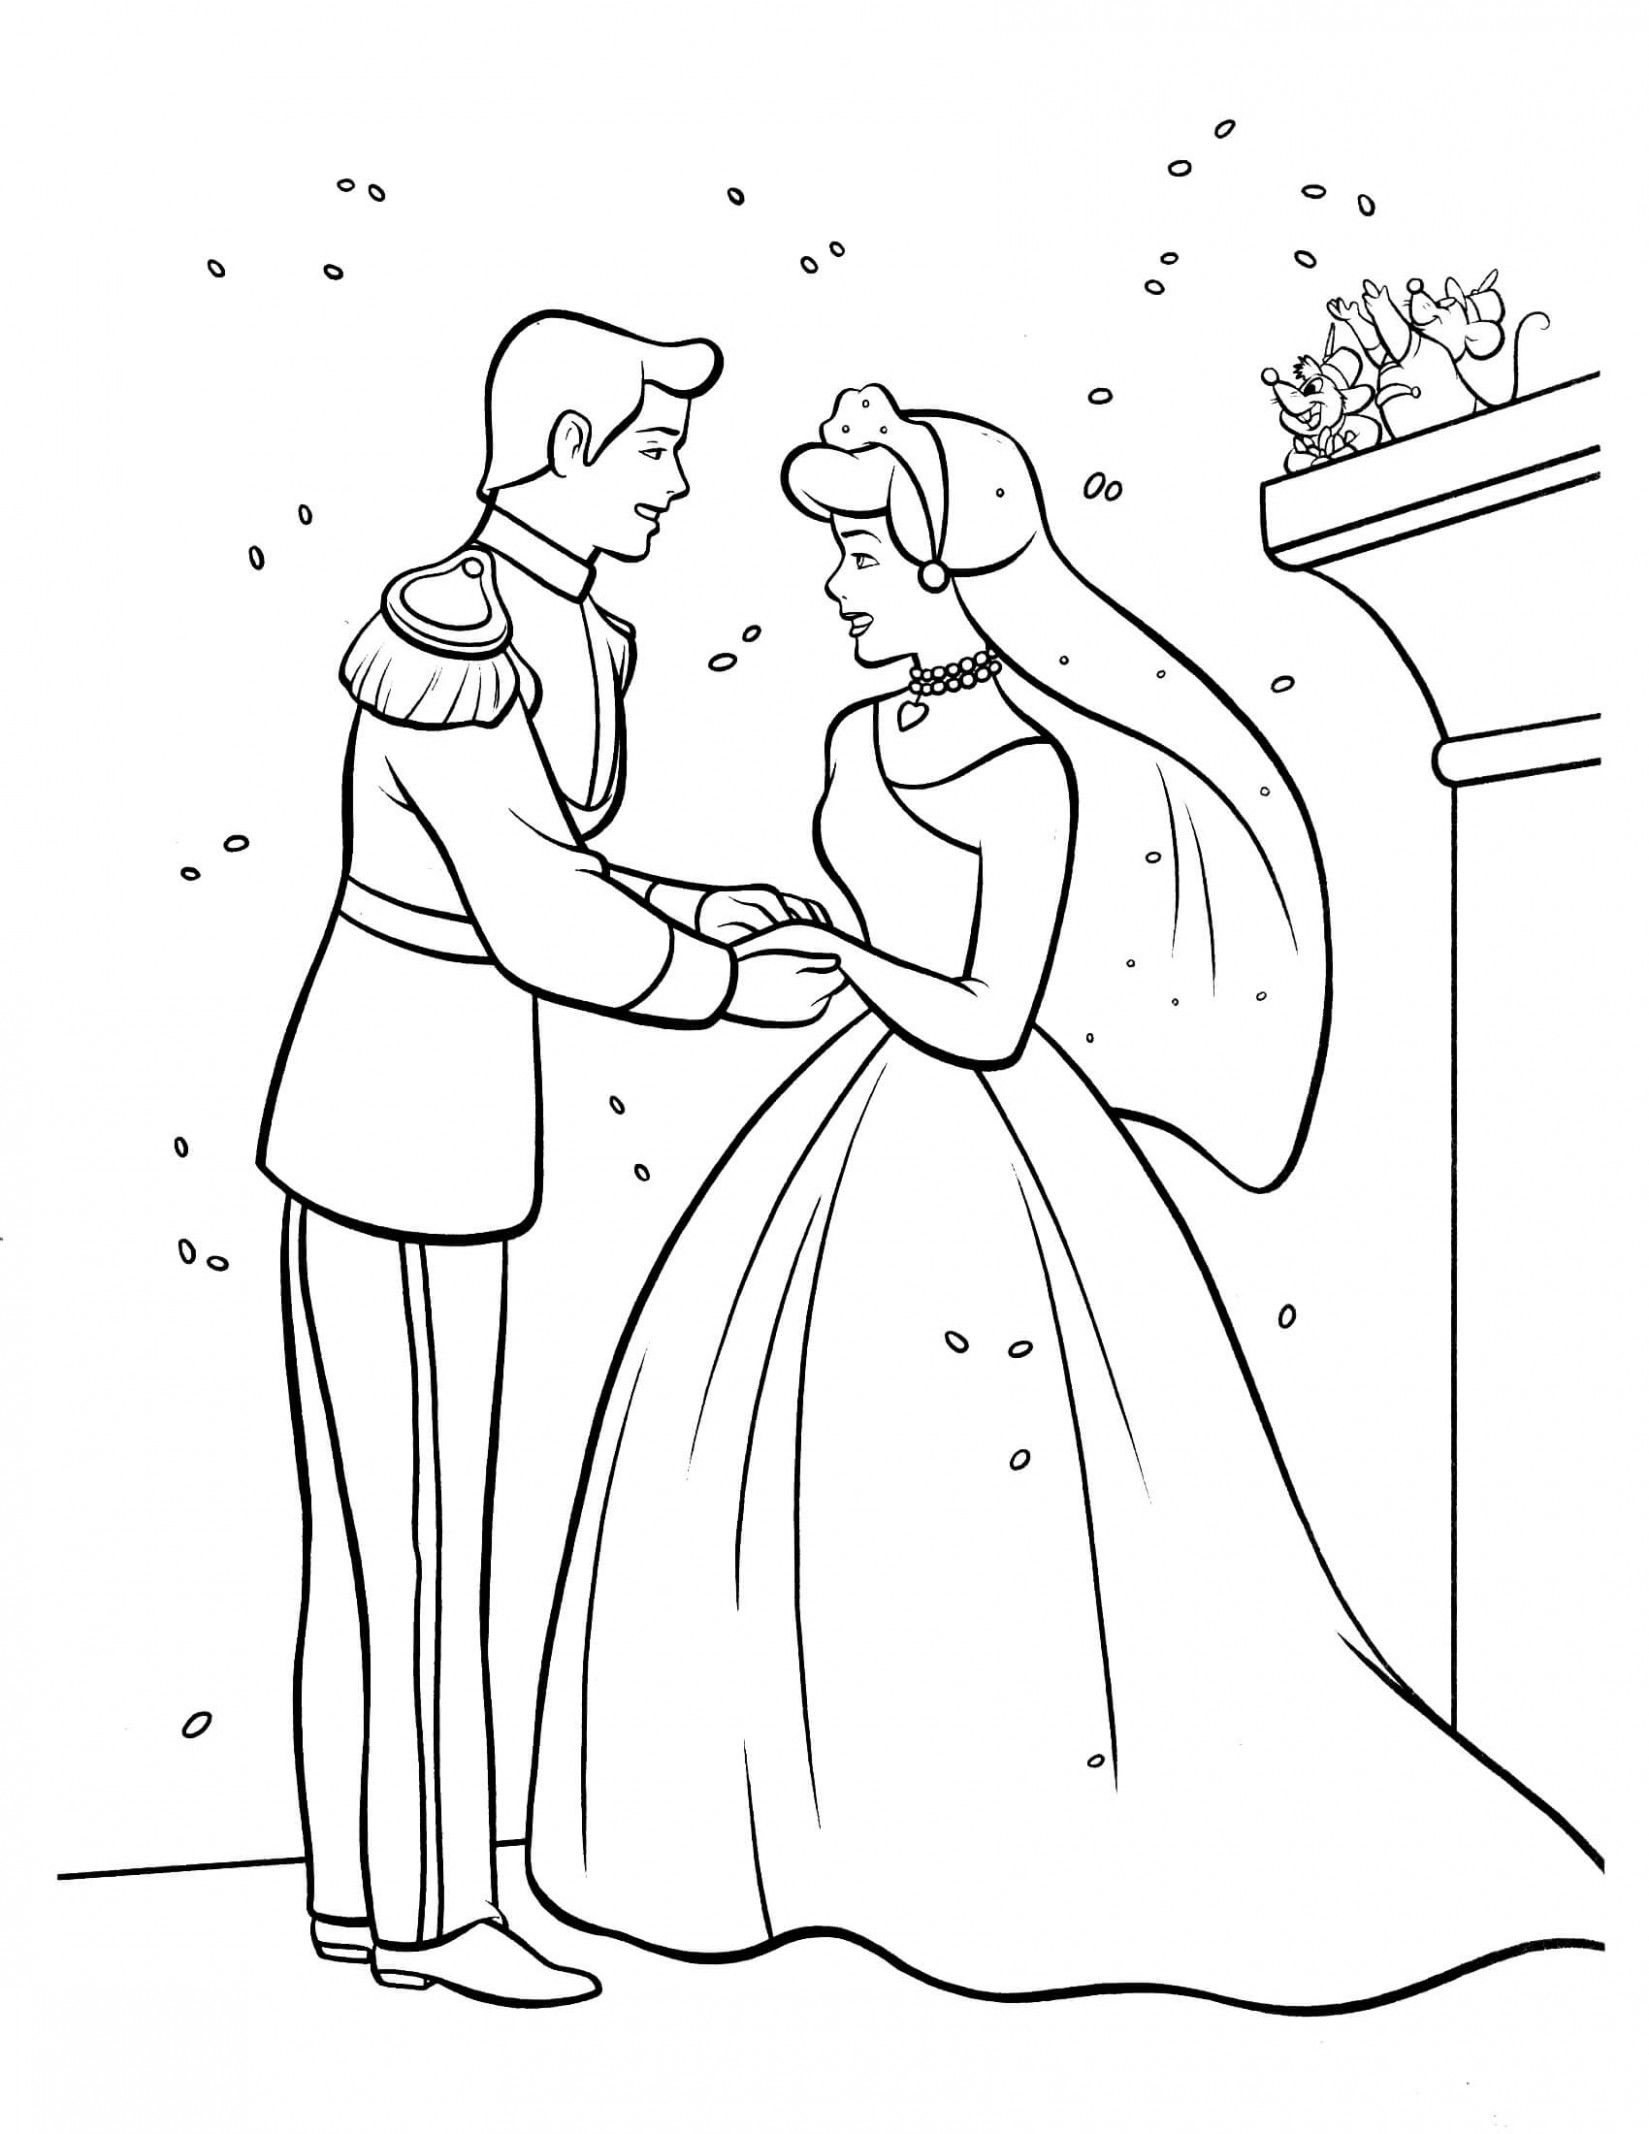 Disney Wedding Drawing Coloring Pages Cinderella Coloring Pages Wedding Coloring Pages Descendants Coloring Pages